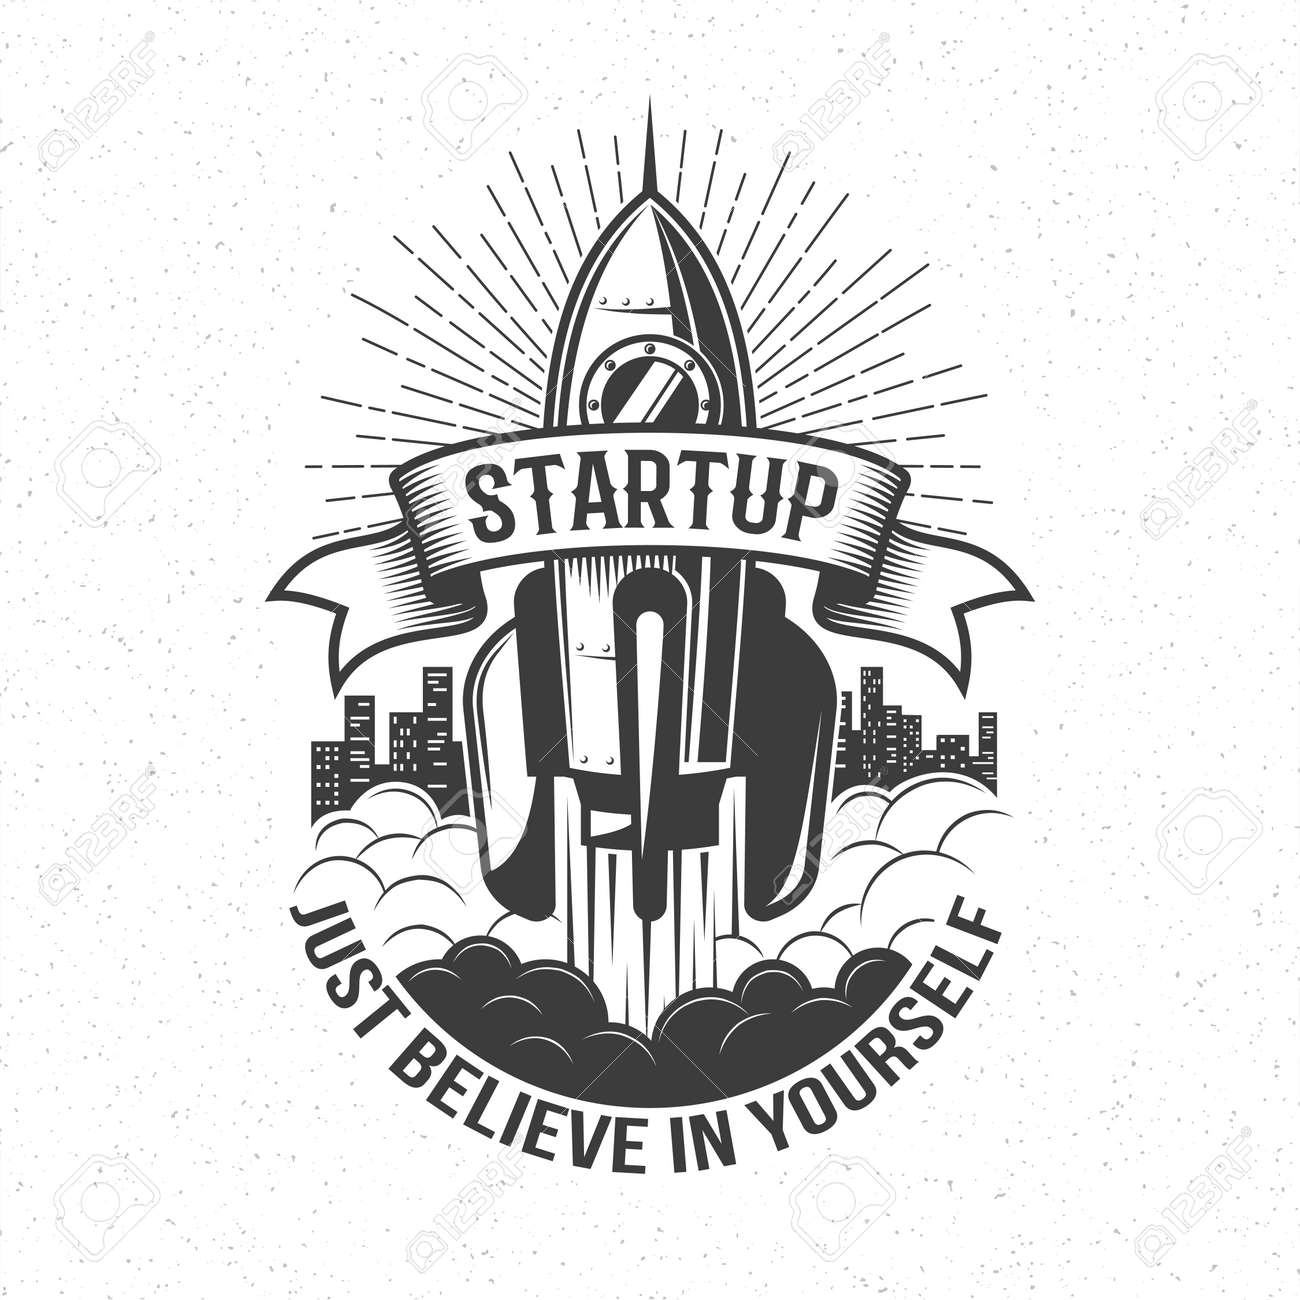 Startup retro logo - rocket launch in the sky with word on ribbon and believe in yourself motto.  Vintage emblem with spaceship. Stock Vector - 85126787